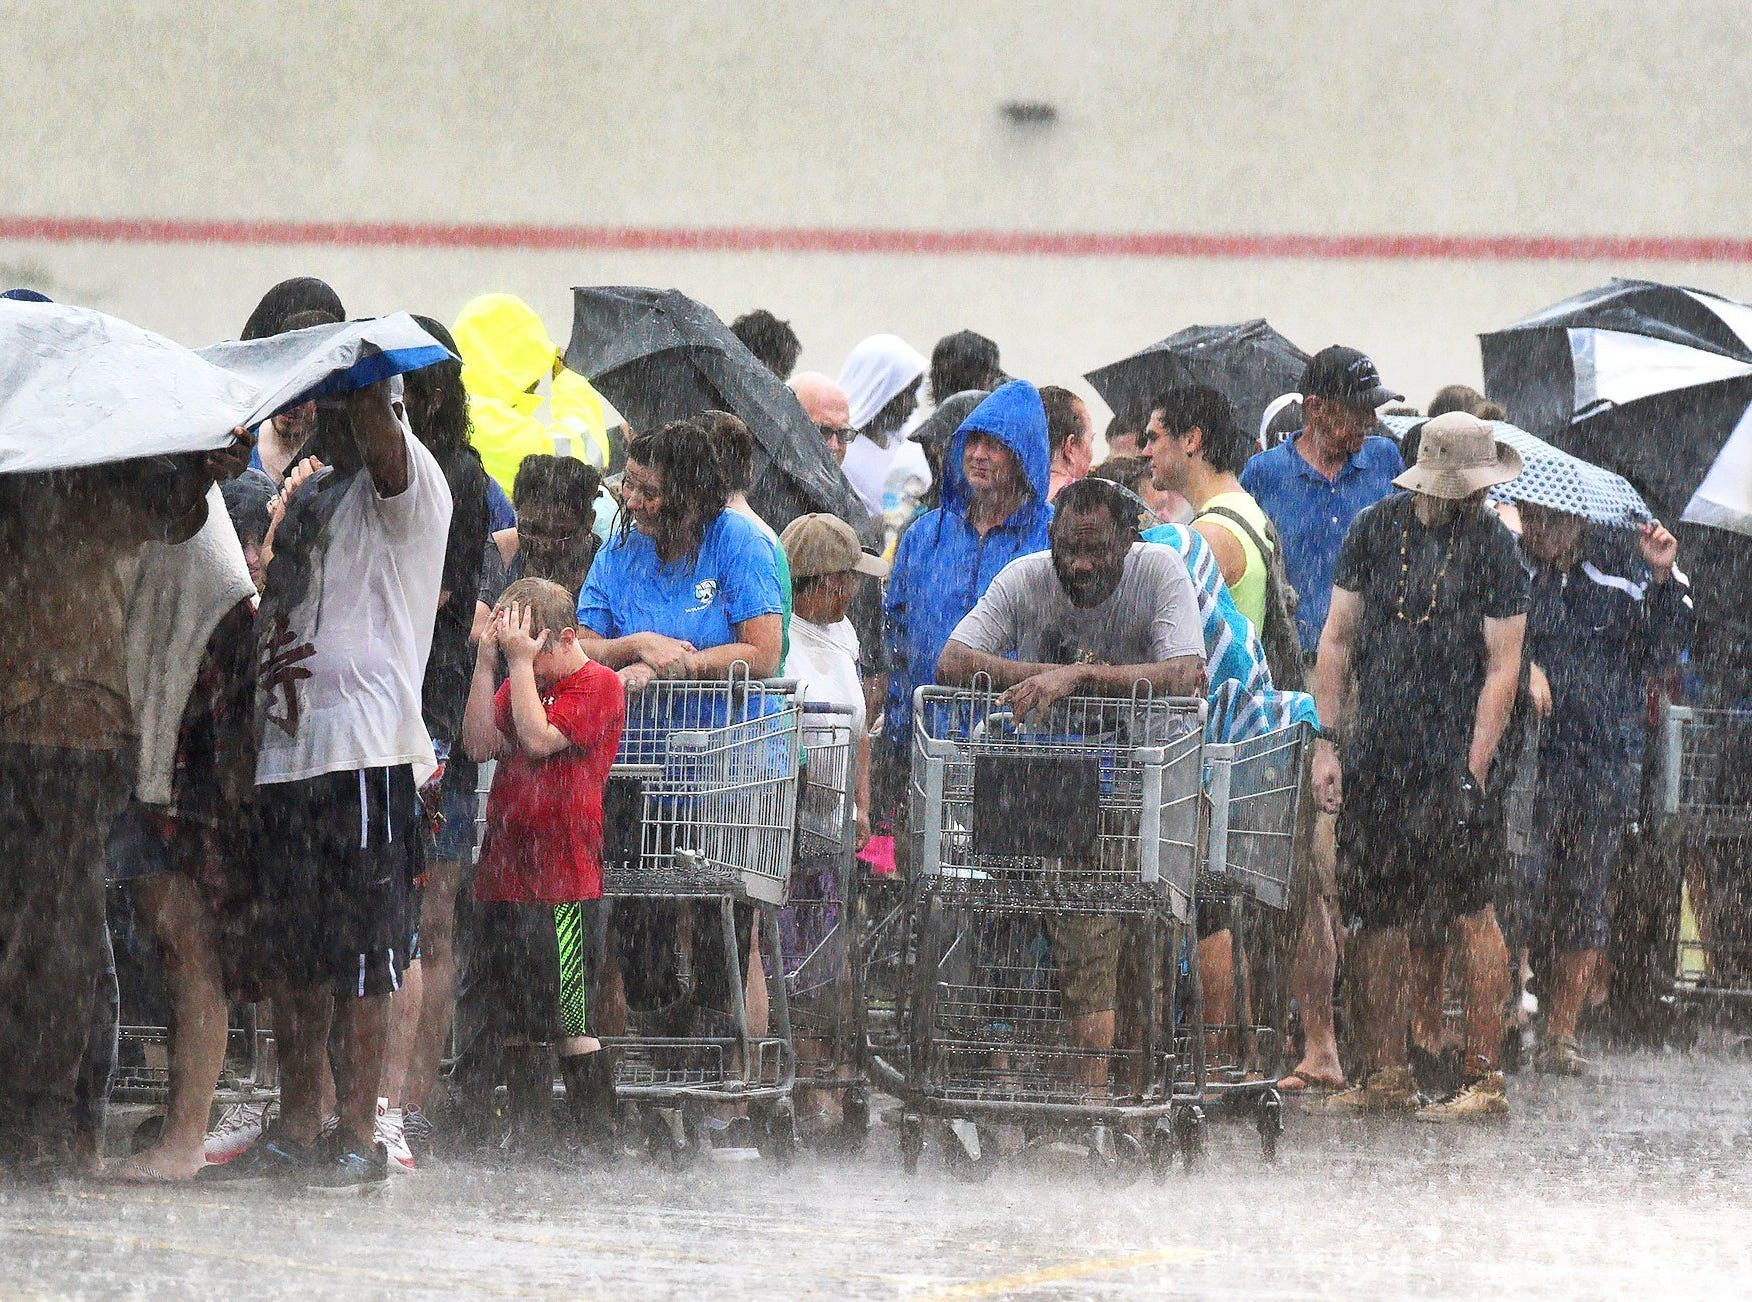 The rain continued in southeastern North Carolina Sunday, Sept. 16, 2018, in Rocky Point, N.C. as customers waiting in line at the local grocery store get pelted during a deluge from Tropical Storm Florence.